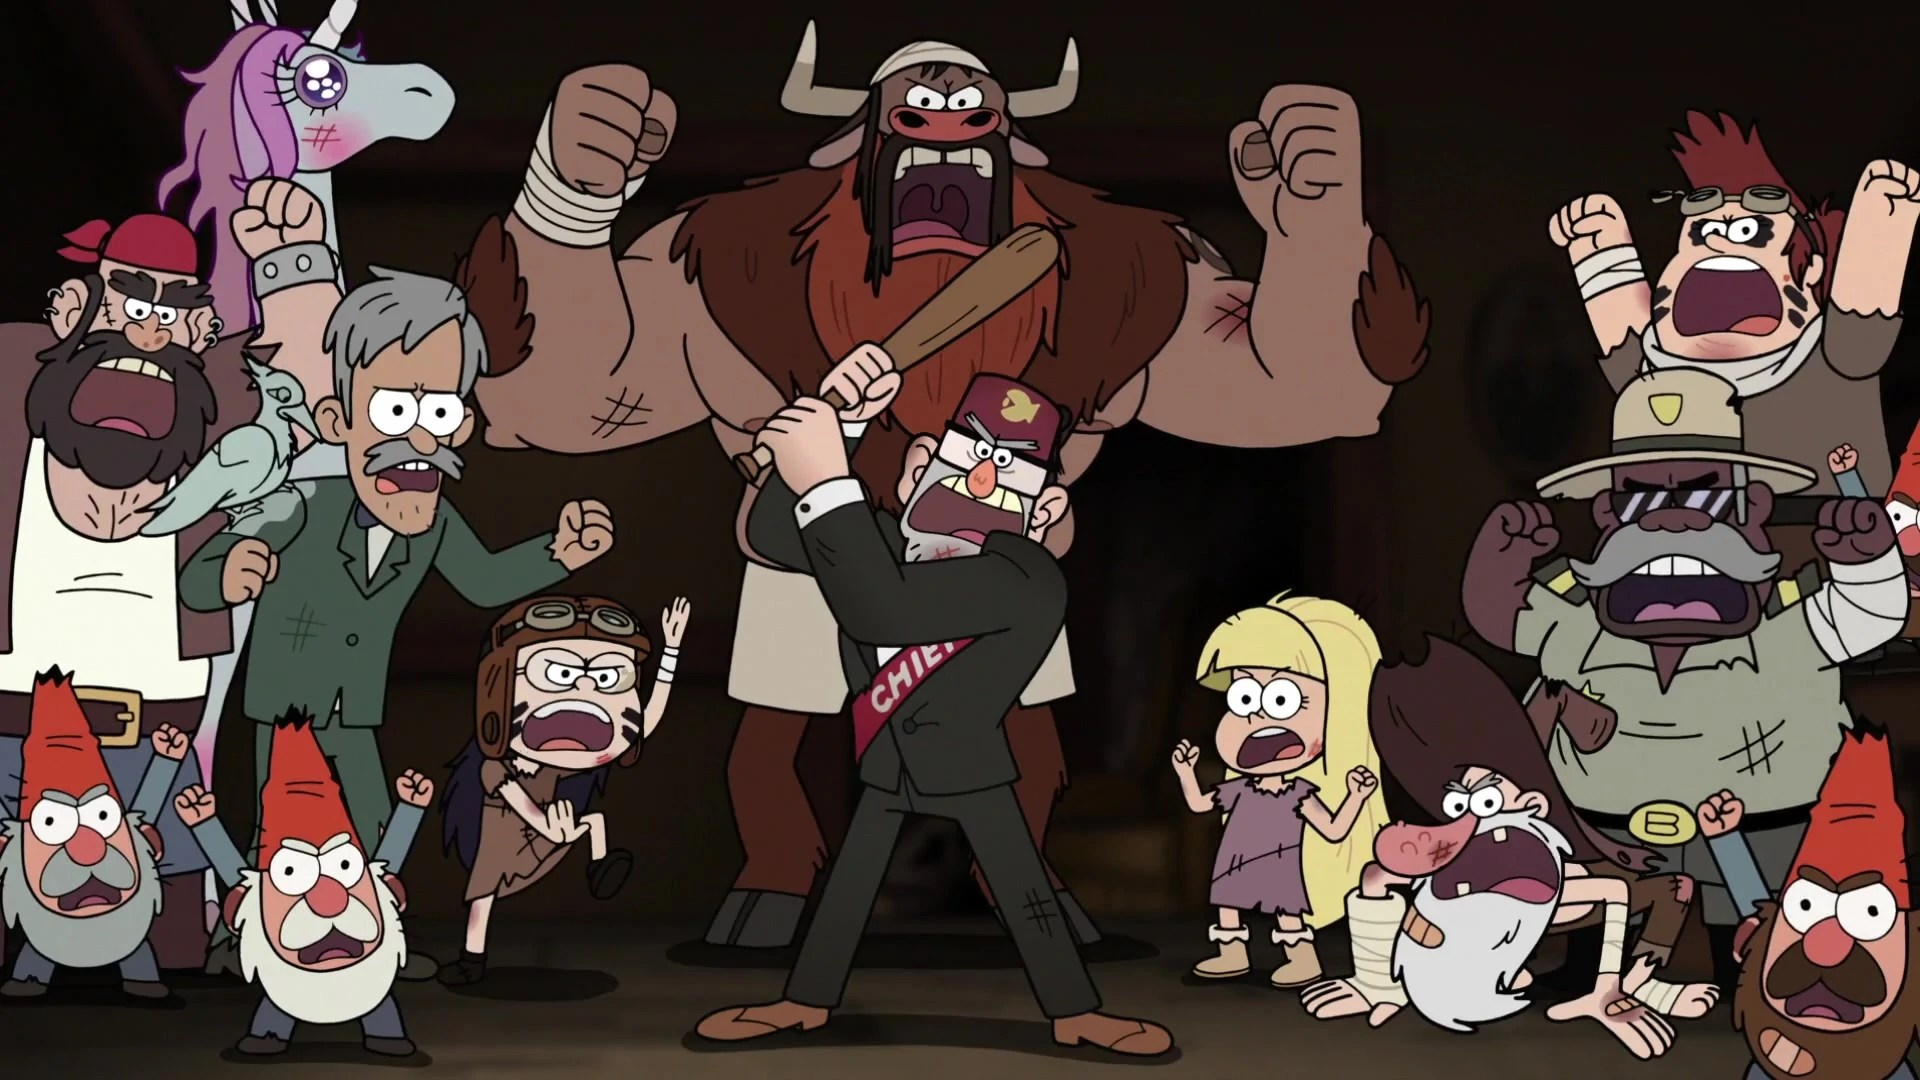 Night Vale Gravity Falls Wallpaper Image S2e19 Stan The Resistance Chef Jpg Gravity Falls